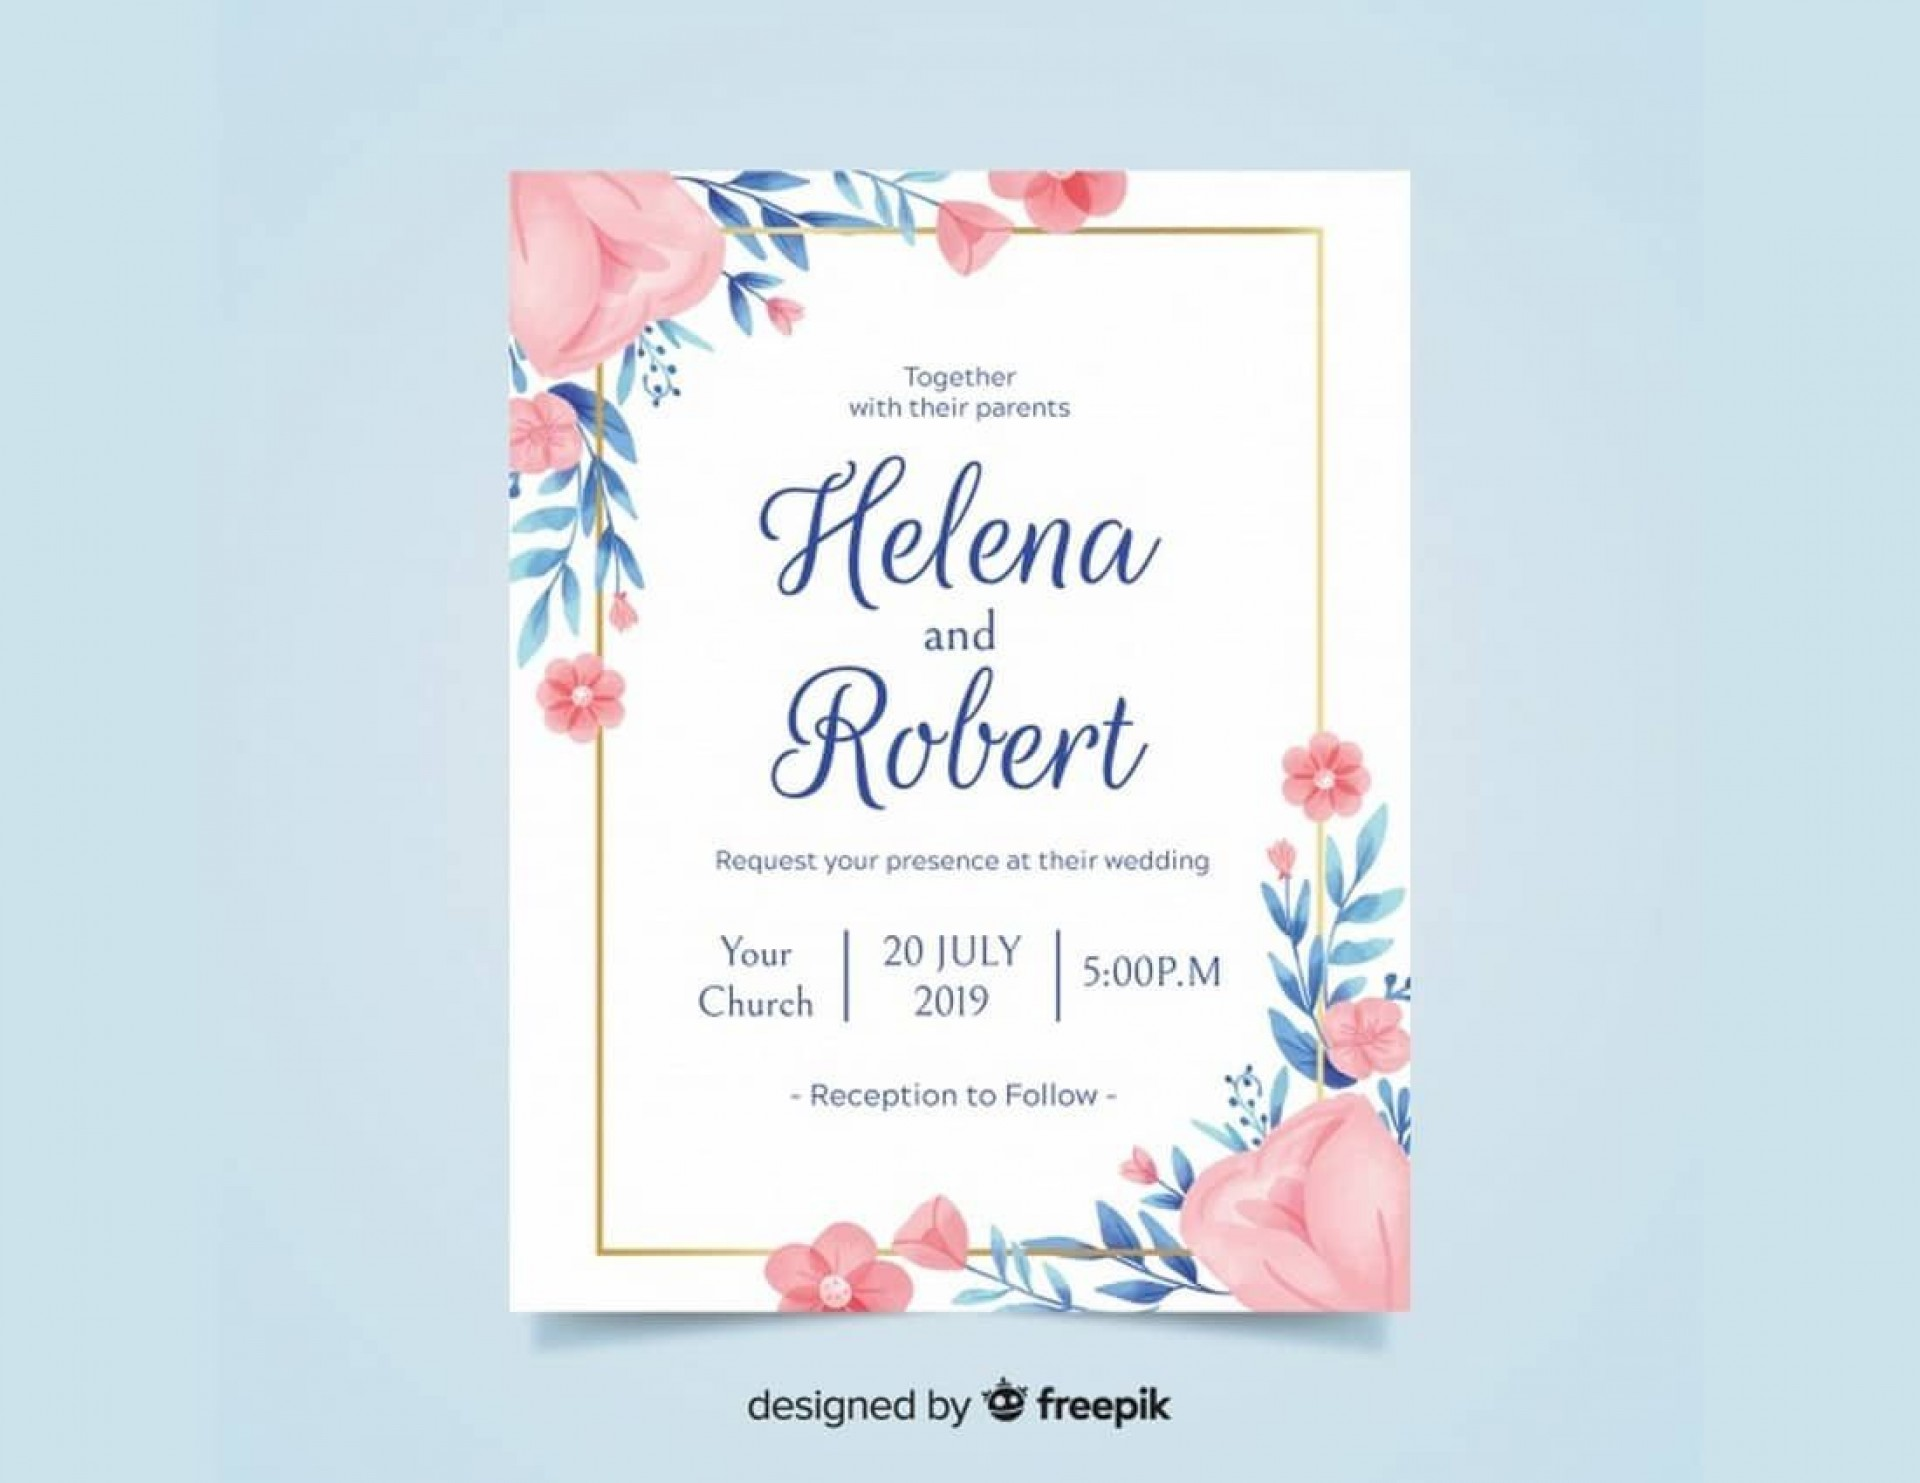 007 Stirring Free Wedding Invitation Template For Word 2019 Highest Clarity 1920